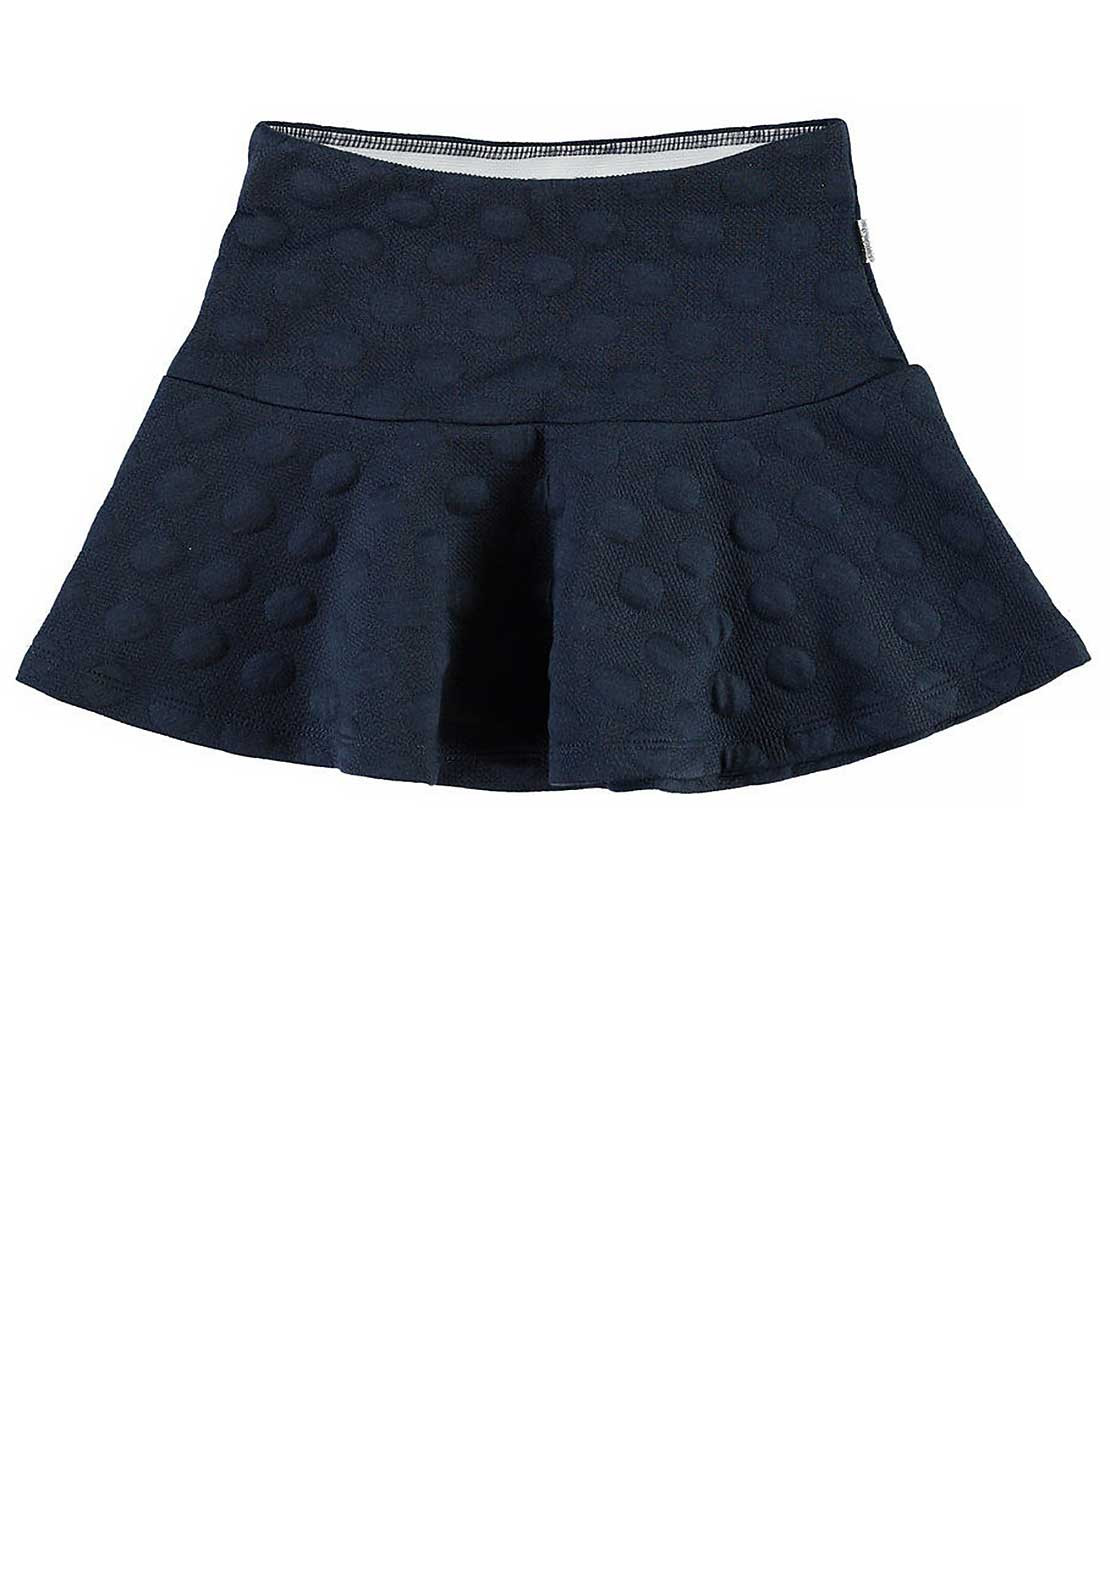 Name It Girls Embossed Dot Print Skirt, Dress Blues